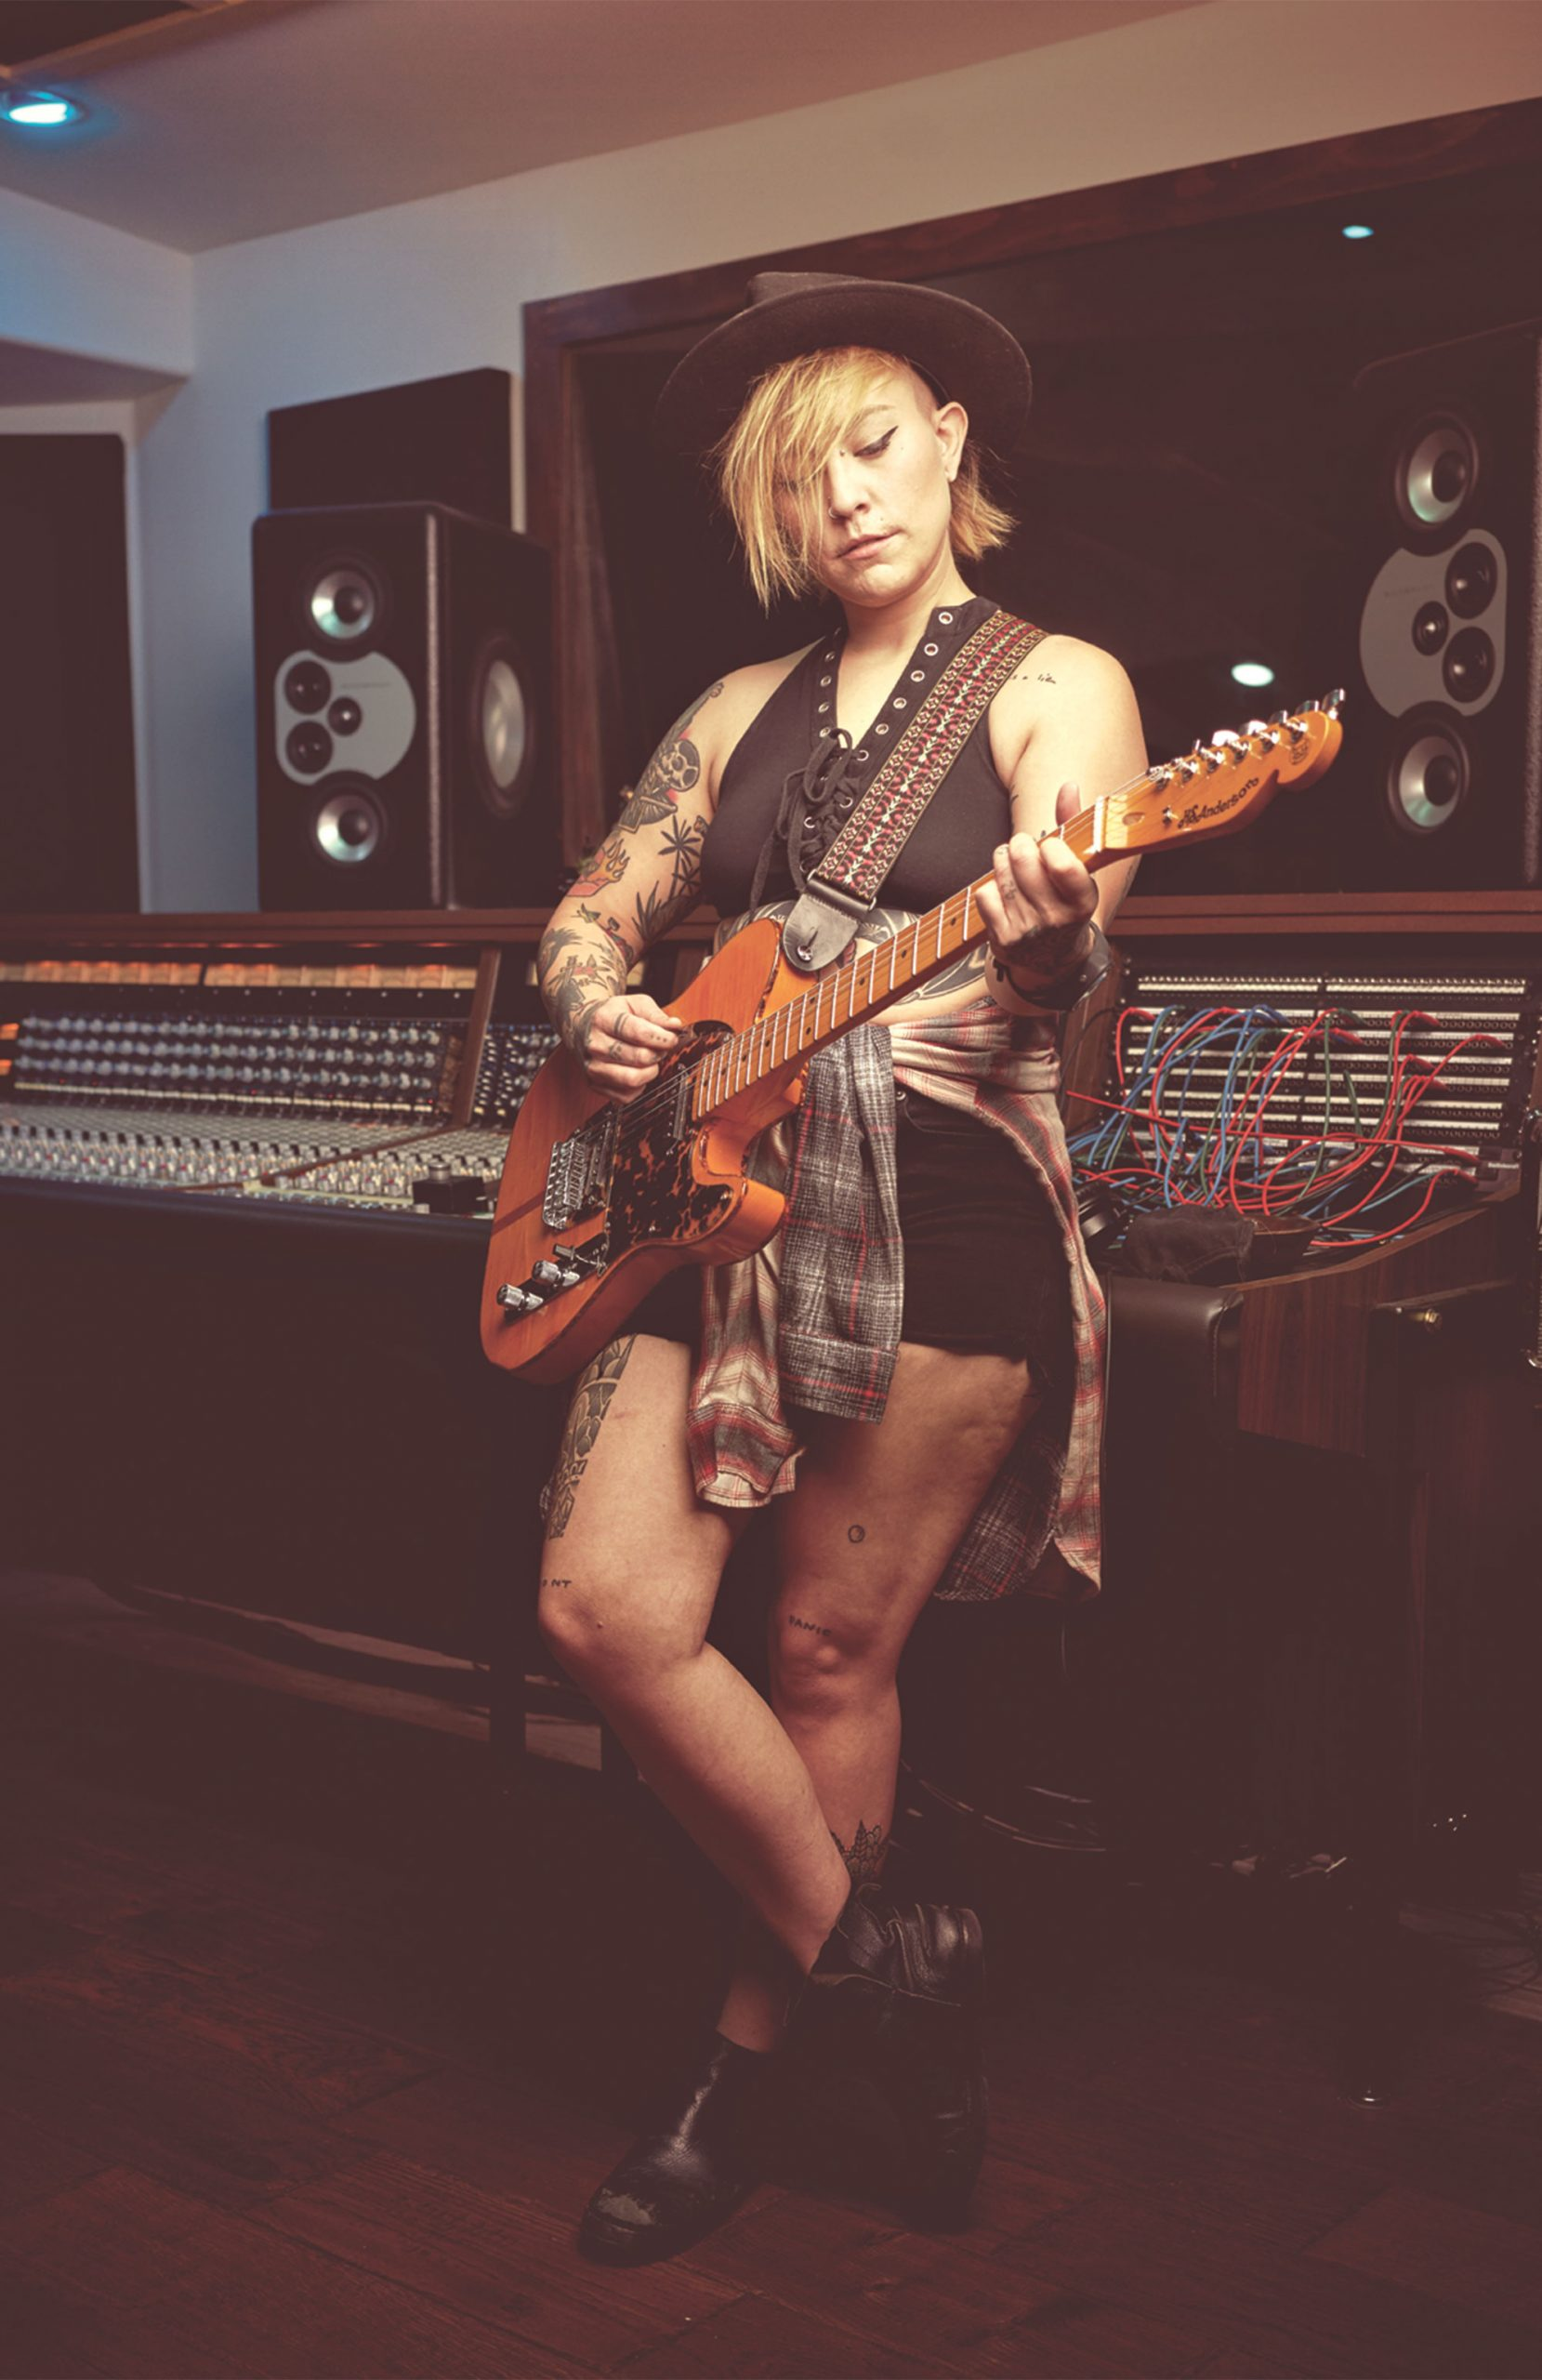 Chelsey Louise at Highland Recording Studio; Photo by Camerawerks